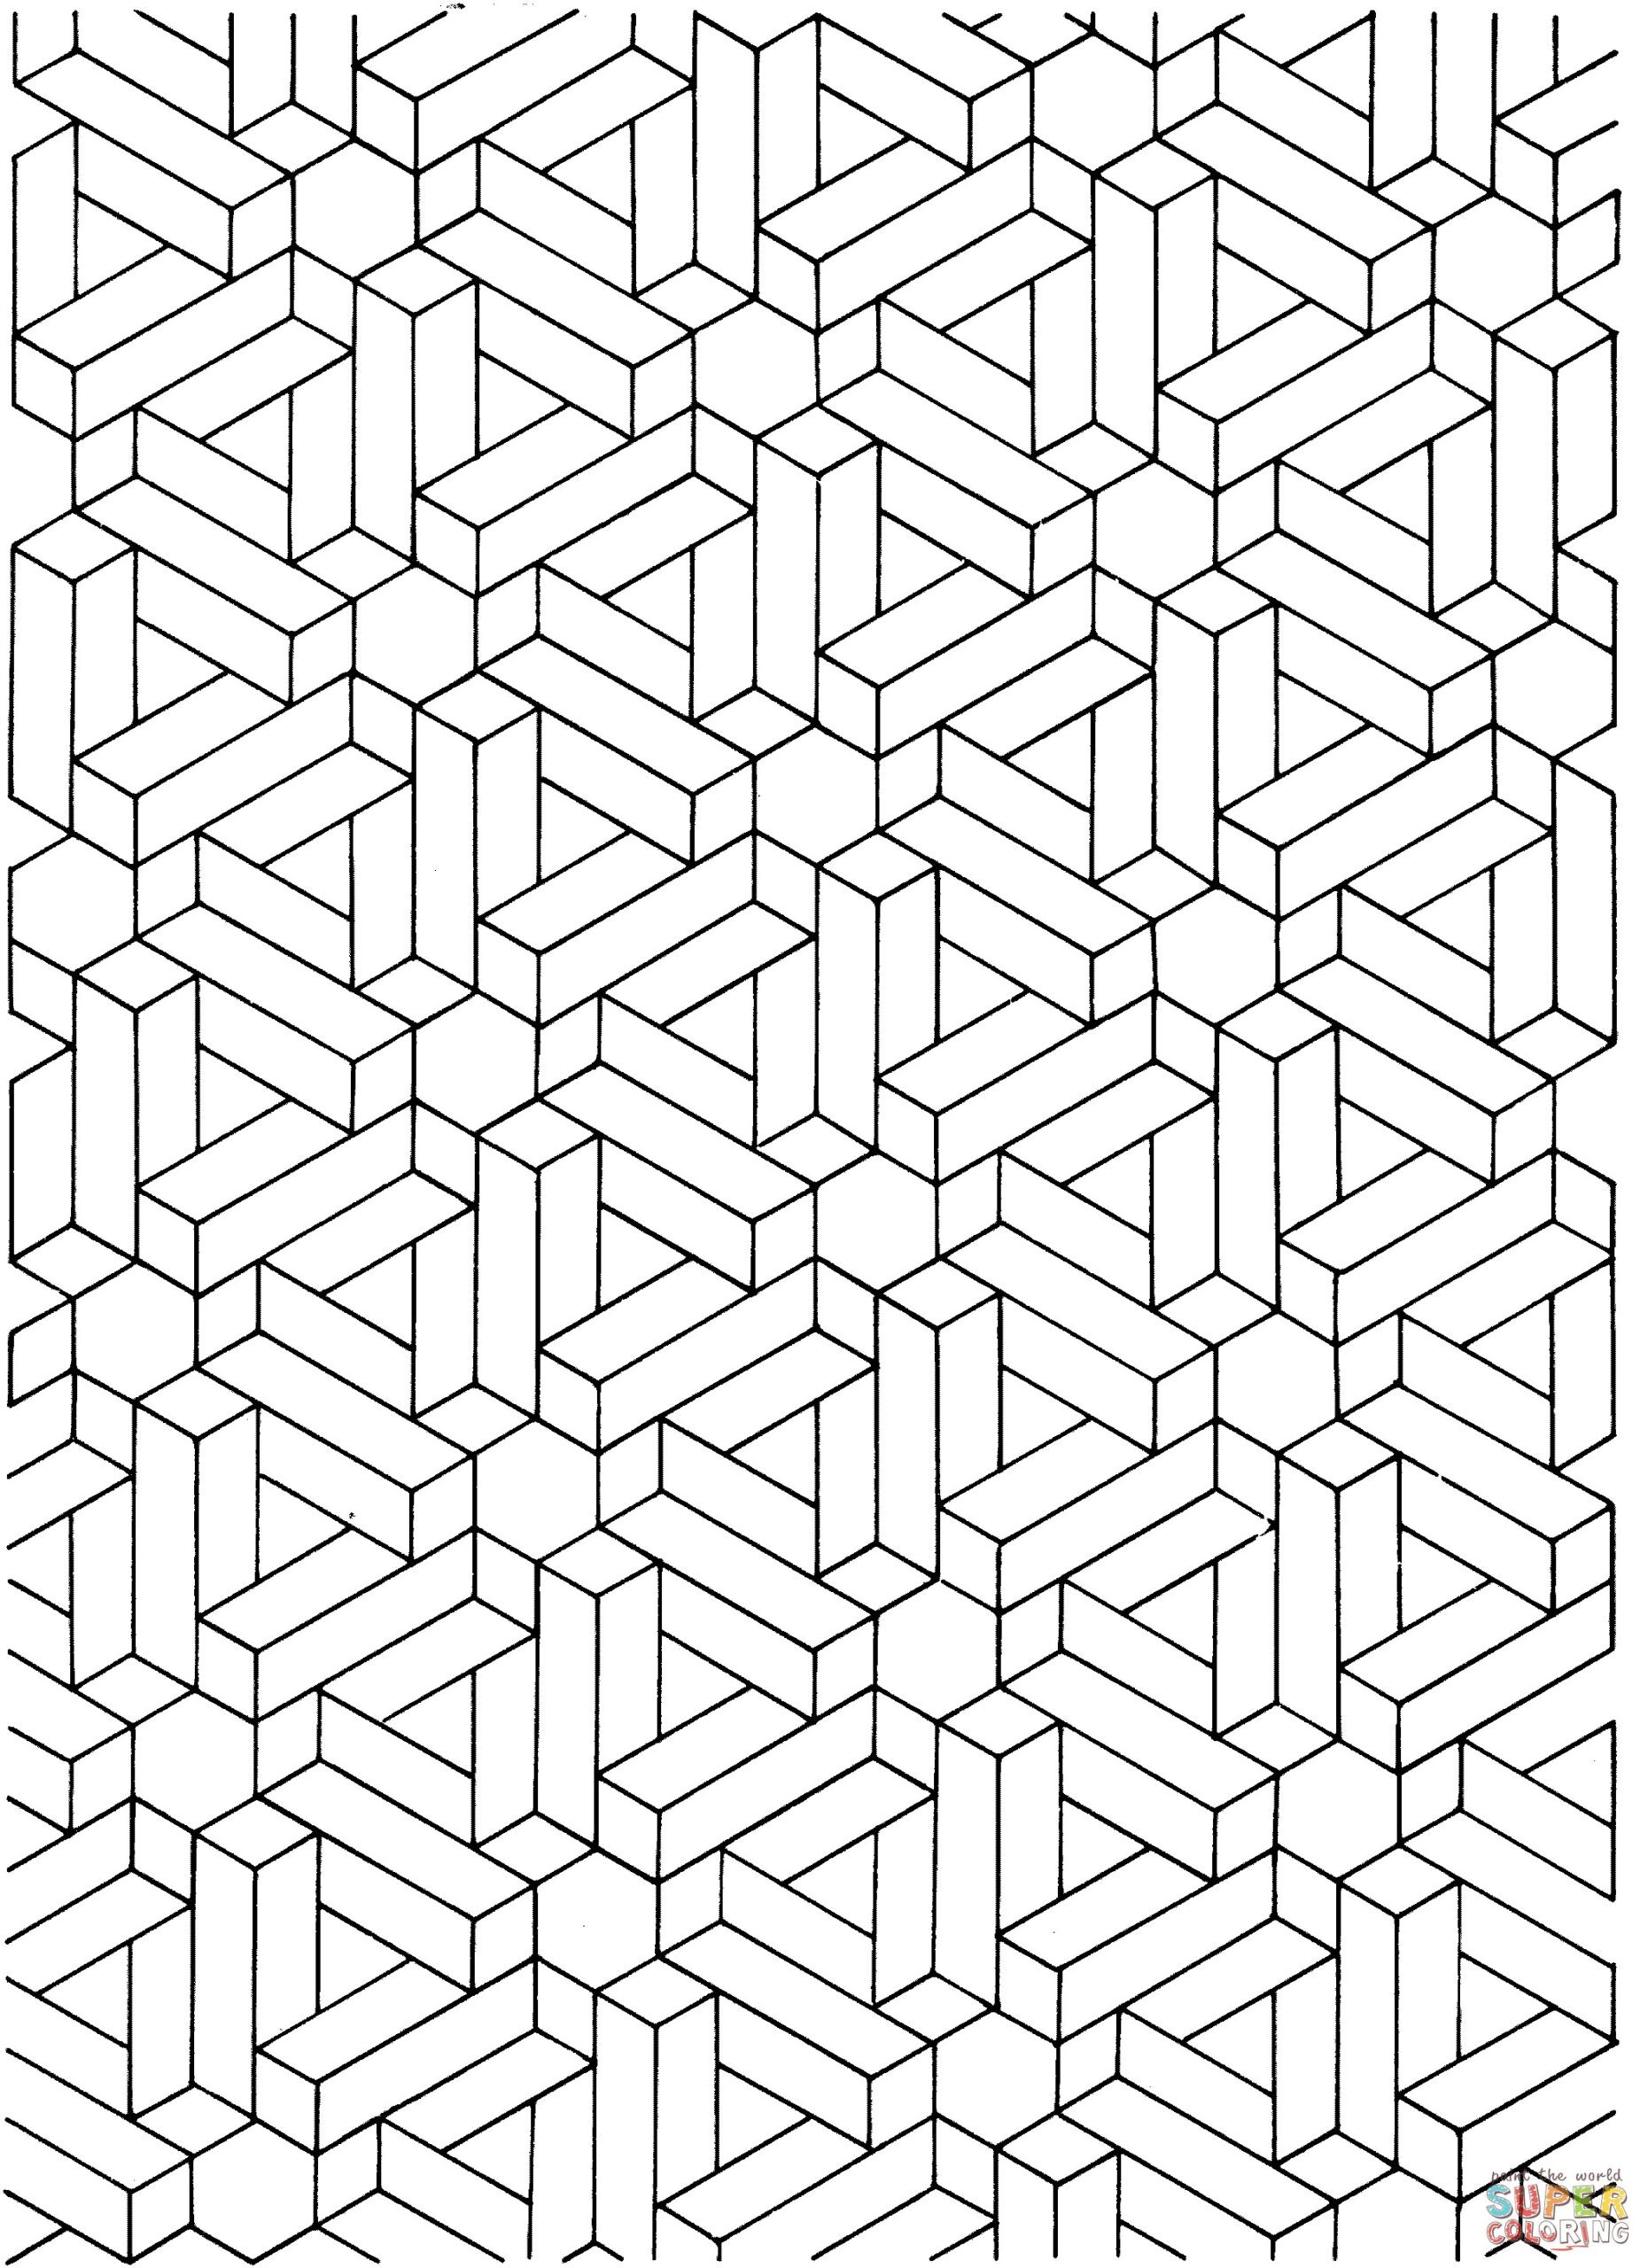 Optical Illusion Worksheets Printable Fun Math Games for 2nd Grade sonic the Hedgehog Coloring